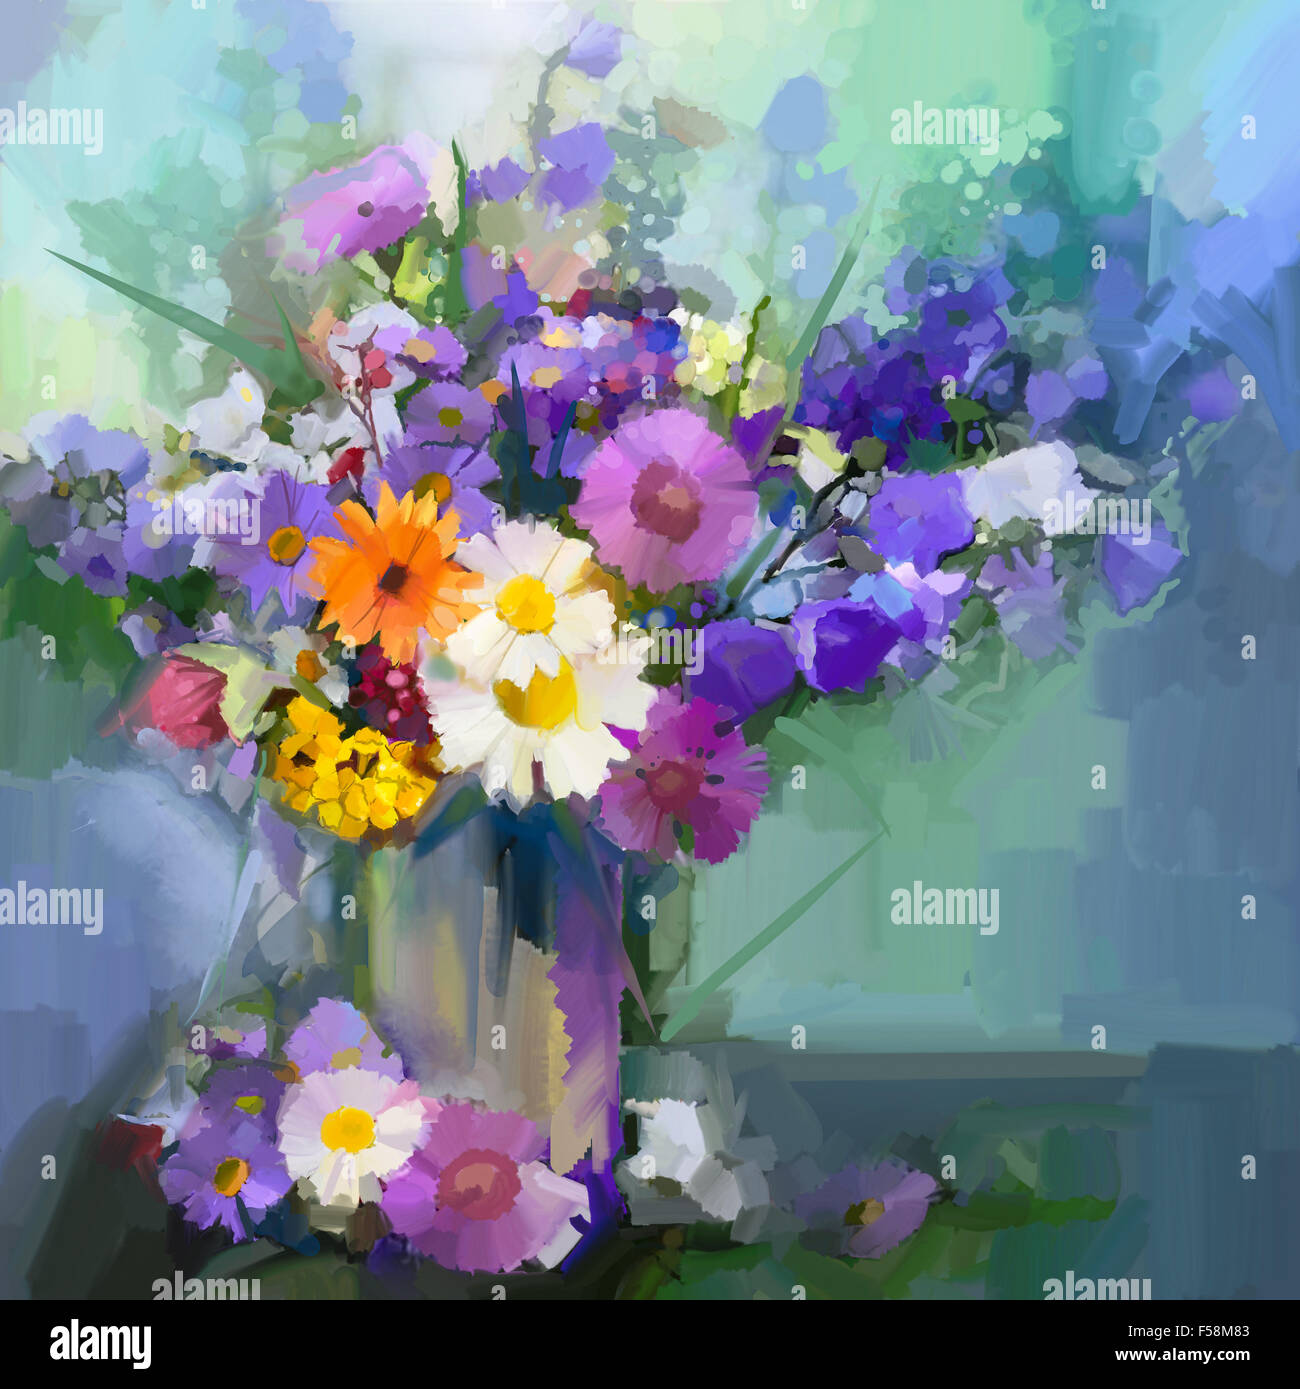 Still life a bouquet of flowers oil painting daisy flowers in vase still life a bouquet of flowers oil painting daisy flowers in vase hand painted floral in soft color and blurred style green c izmirmasajfo